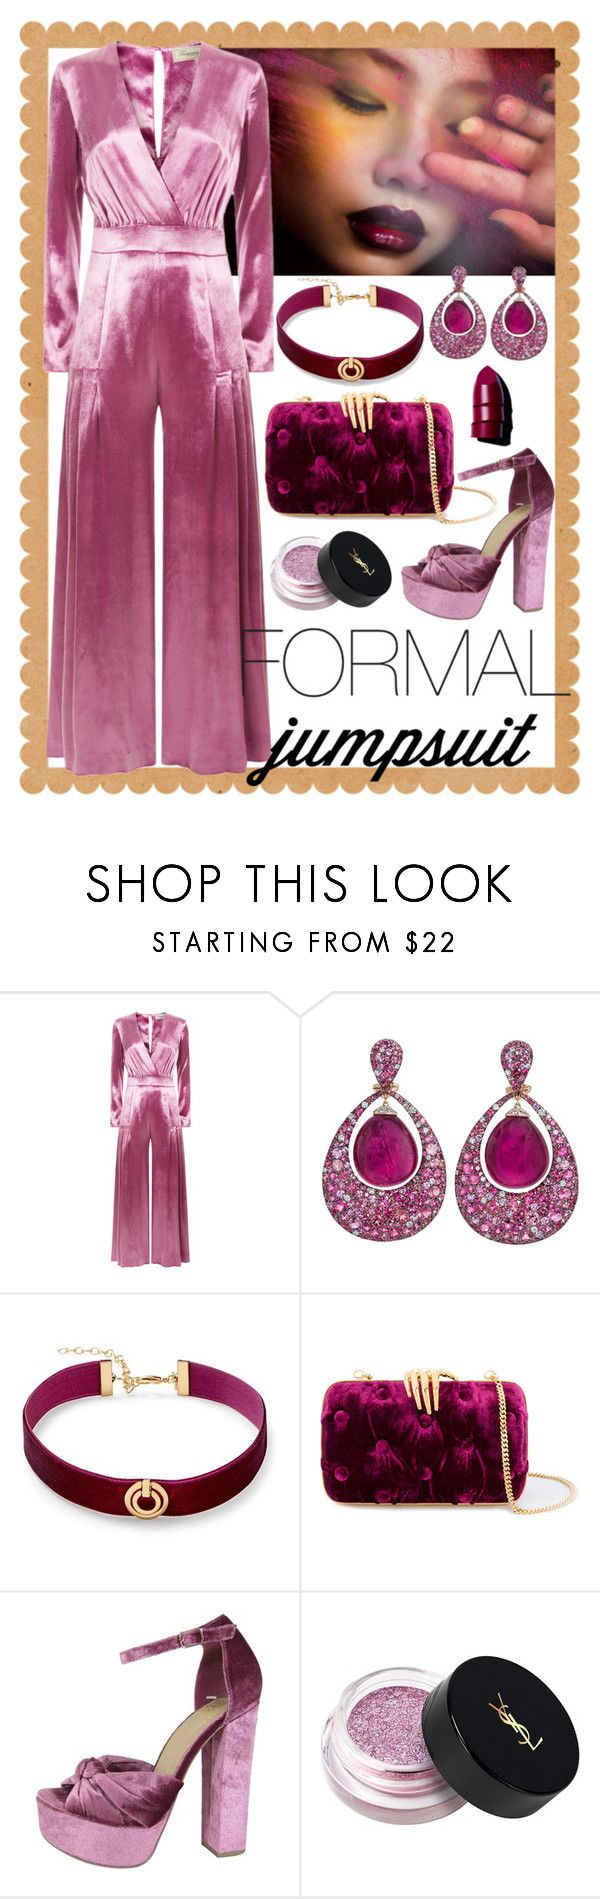 """""""Formal Jumpsuit - Rose"""" by giovanina-001 ❤ liked on Polyvore featuring Temperley London, Margot McKinney, Rebecca Minkoff, Benedetta Bruzziches, Speed Limit 98, Yves Saint Laurent, Anastasia Beverly Hills and jumpsuits"""